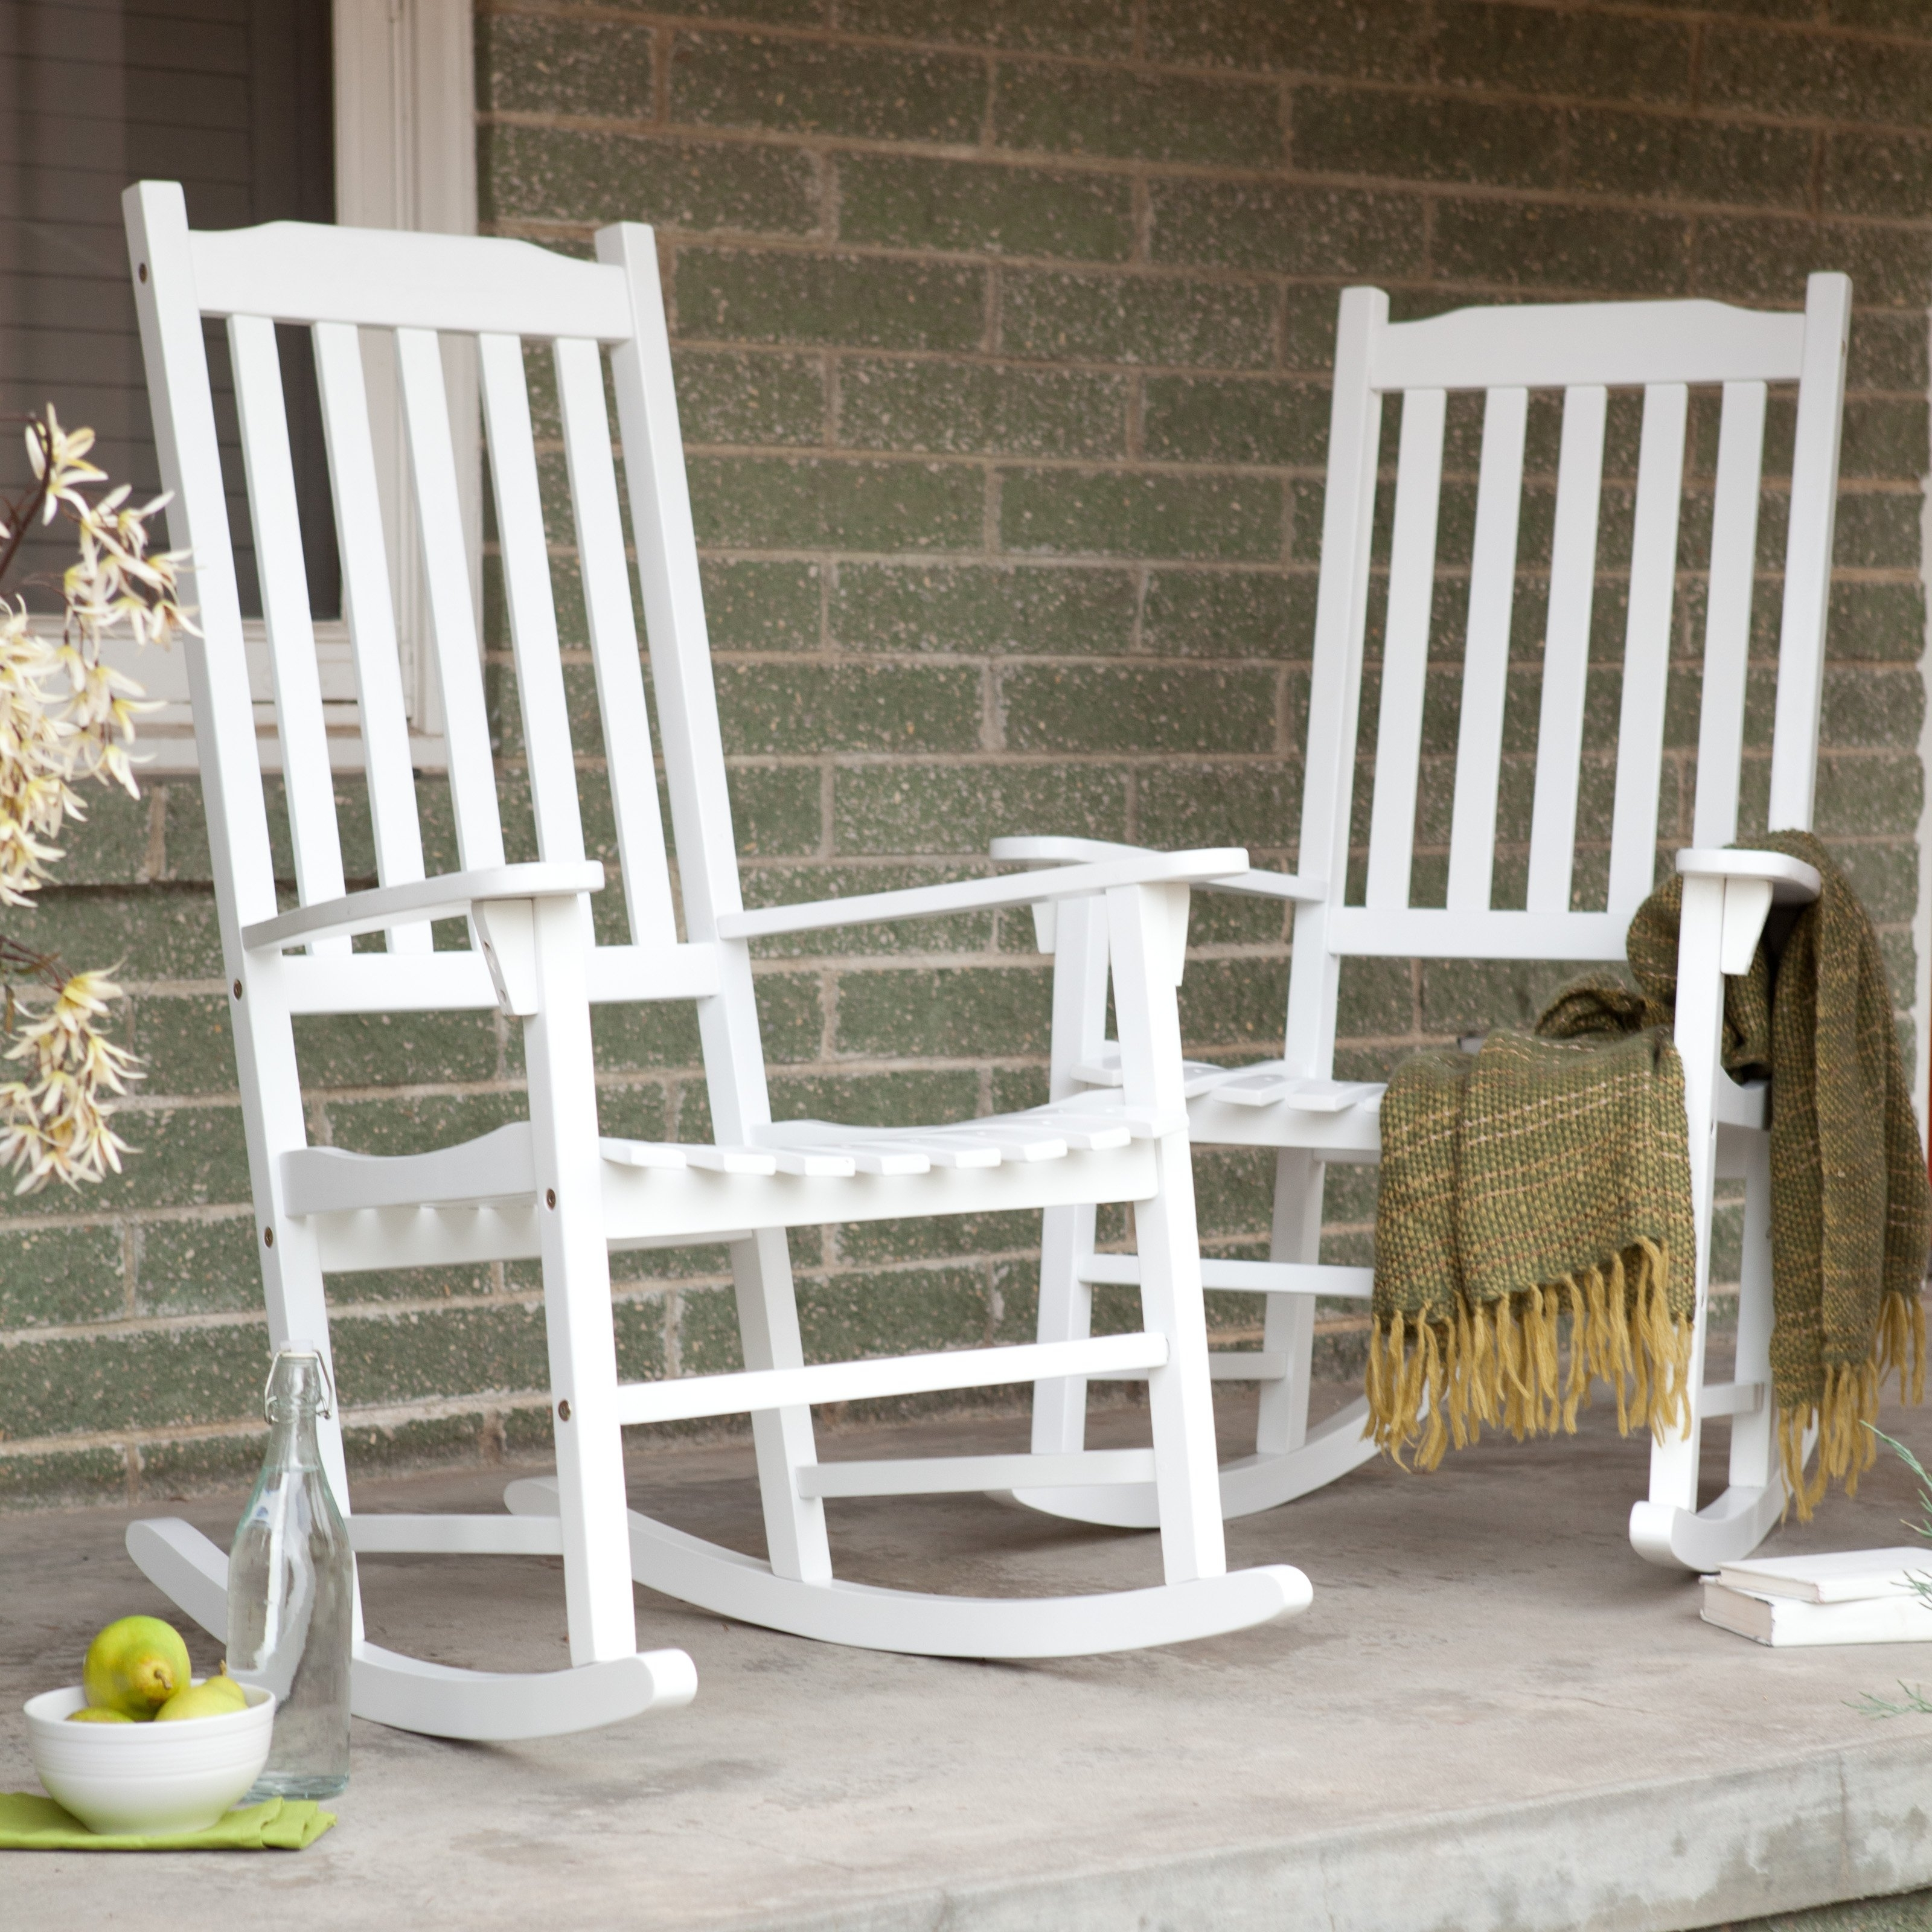 Coral Coast Indoor/outdoor Mission Slat Rocking Chairs – White – Set Intended For Well Known Outside Rocking Chair Sets (View 4 of 20)